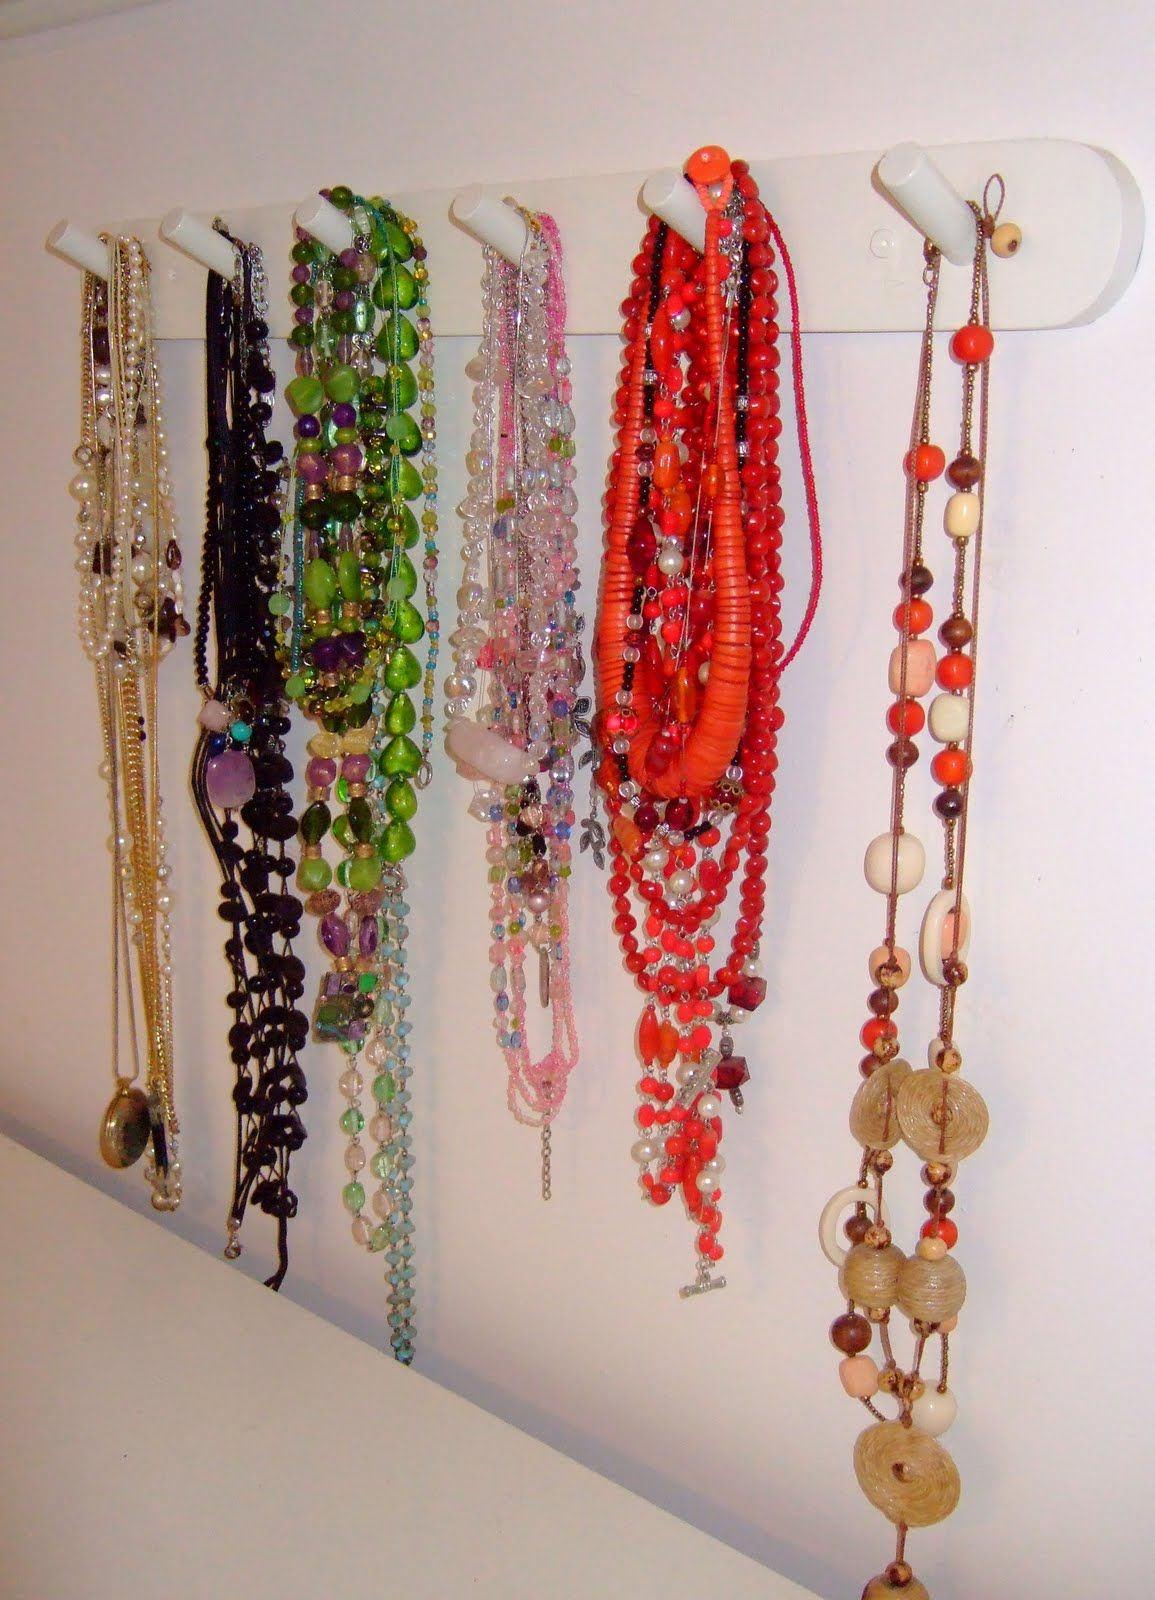 My organized necklaces by colour!